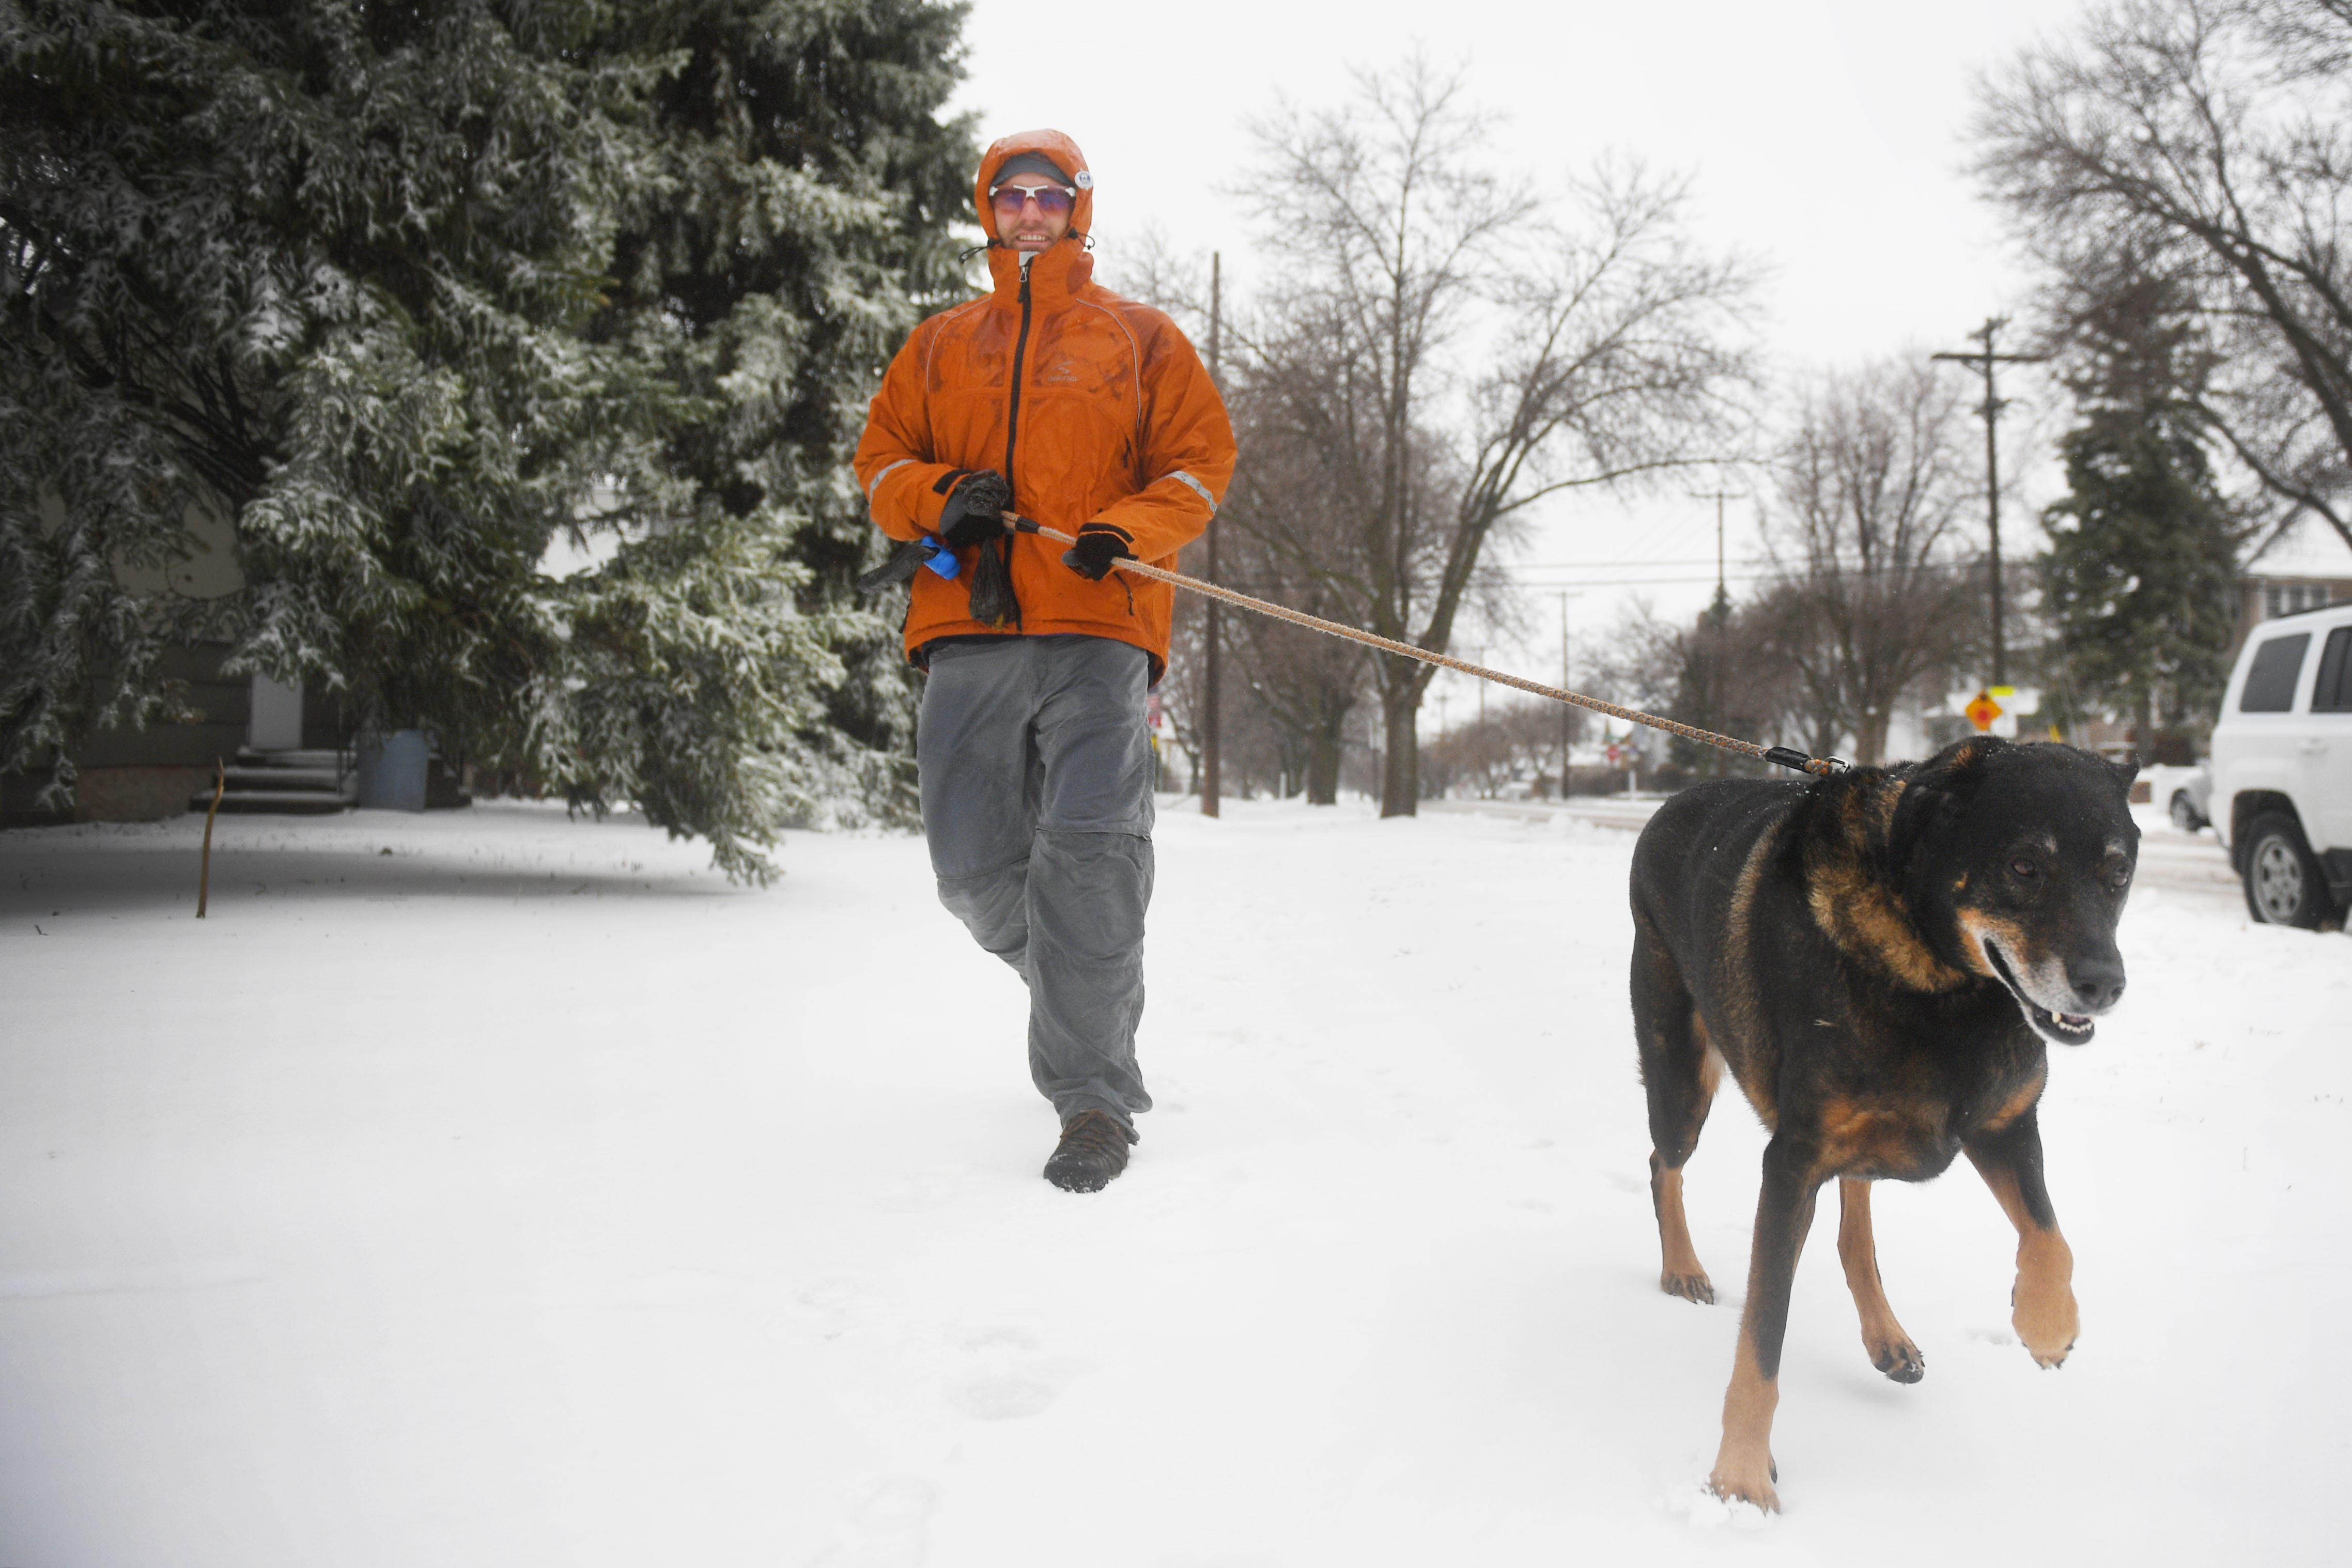 David Heinold walks his dog Max, a German Shepard lab mix, through the snow Thursday, April 11, 2019 in Sioux Falls, S.D. Heinold said Max is a very energetic dog and needs to be walked everyday despite what the weather is like. He said Max loves the snow so he is not phased by the weather.